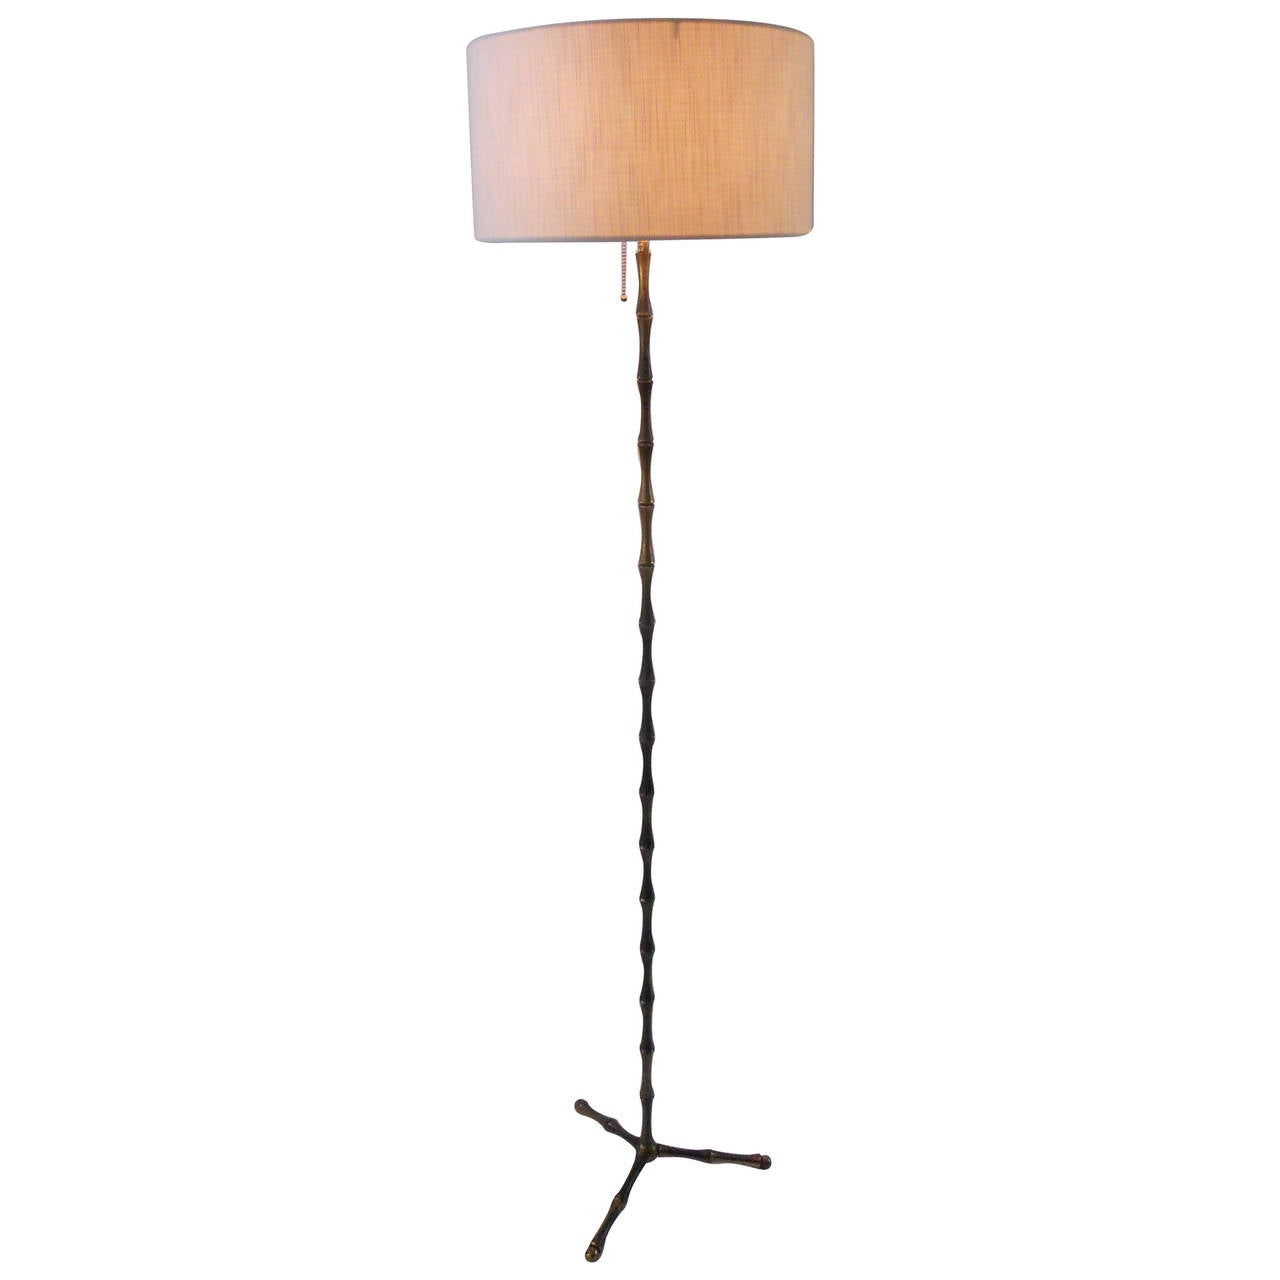 French Faux Bamboo Floor Lamp, 1950